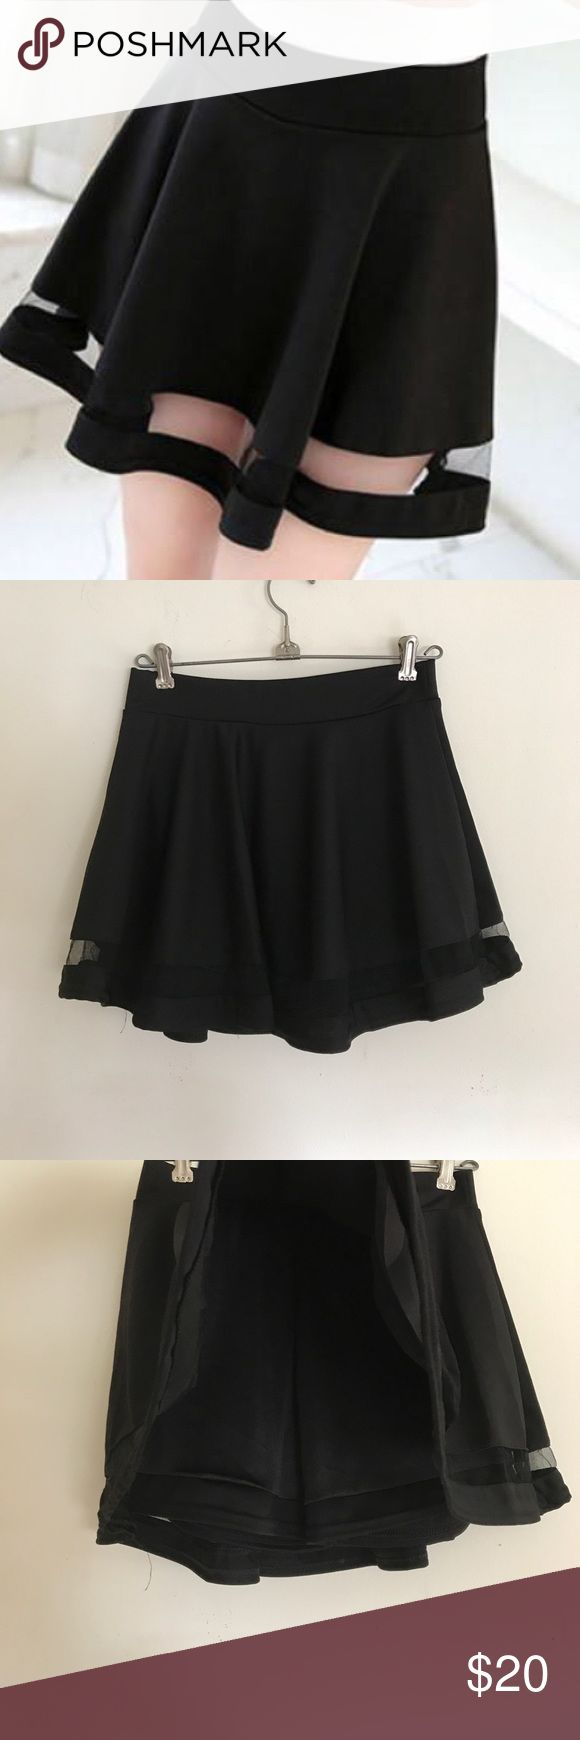 Korean See Through Panel Skort From syndromestore, sold as Korean fashion Summer See-Through Skirt. Built in shorts, no tags because came in plastic but never worn, best fit 0-2. Syndrome Store Skirts Circle & Skater